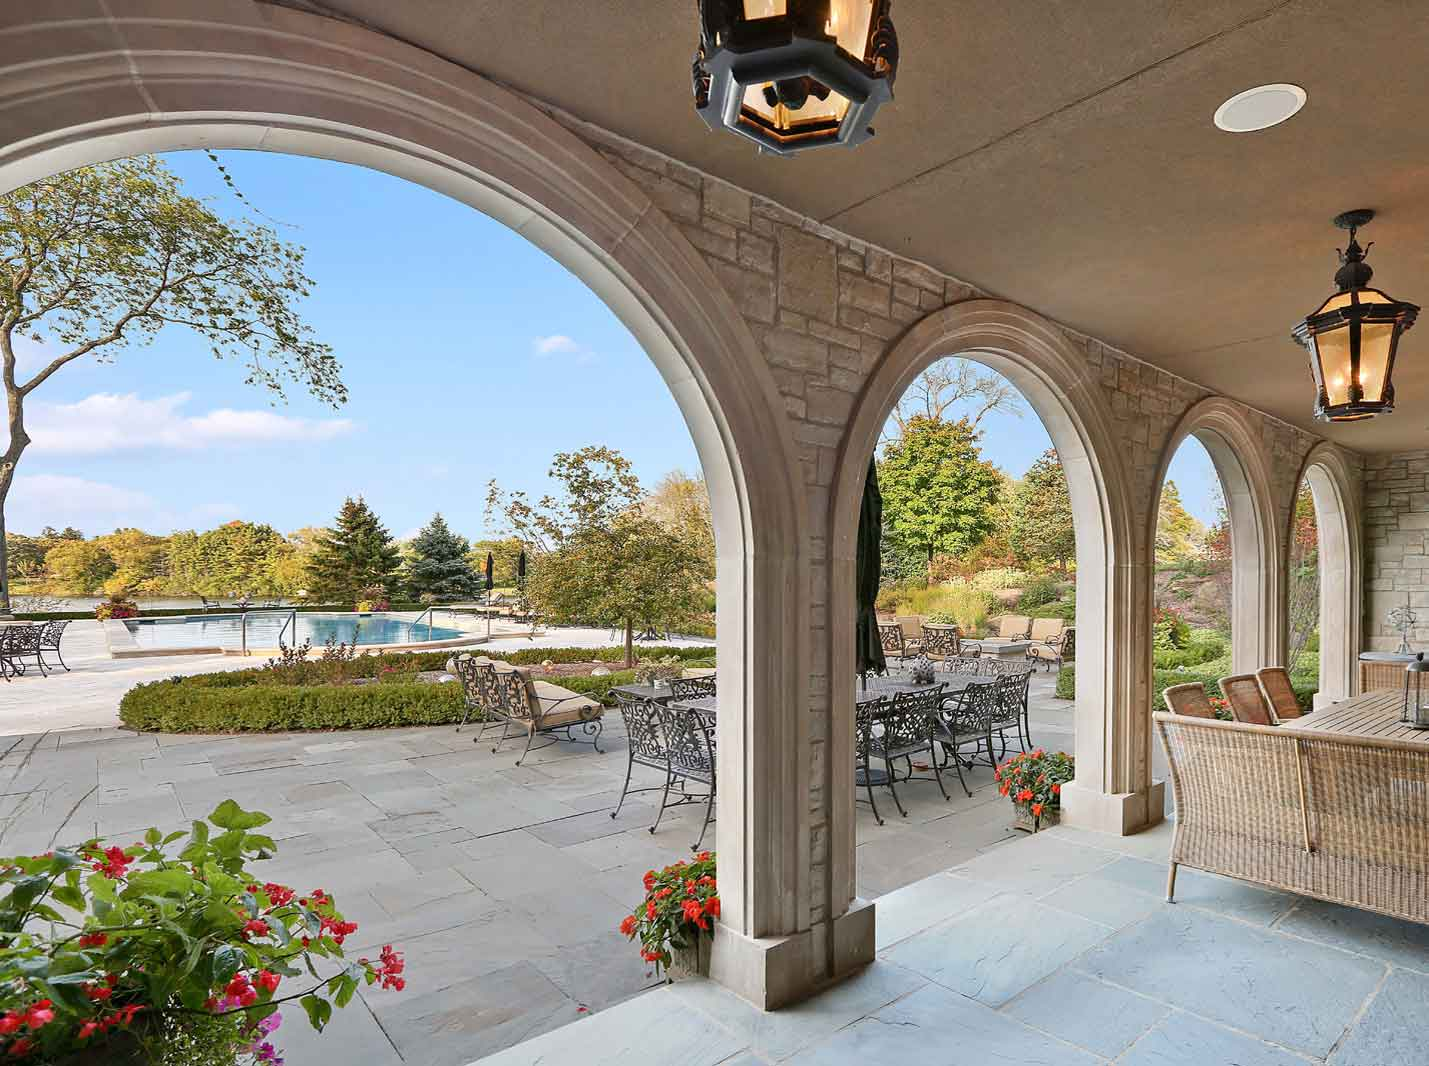 Designed for lavish entertaining, this estate in prestigious Barrington Hills is a vision of Gilded Age splendor with its sumptuous pool terrace, exquisite gardens, and two beautiful lakes.